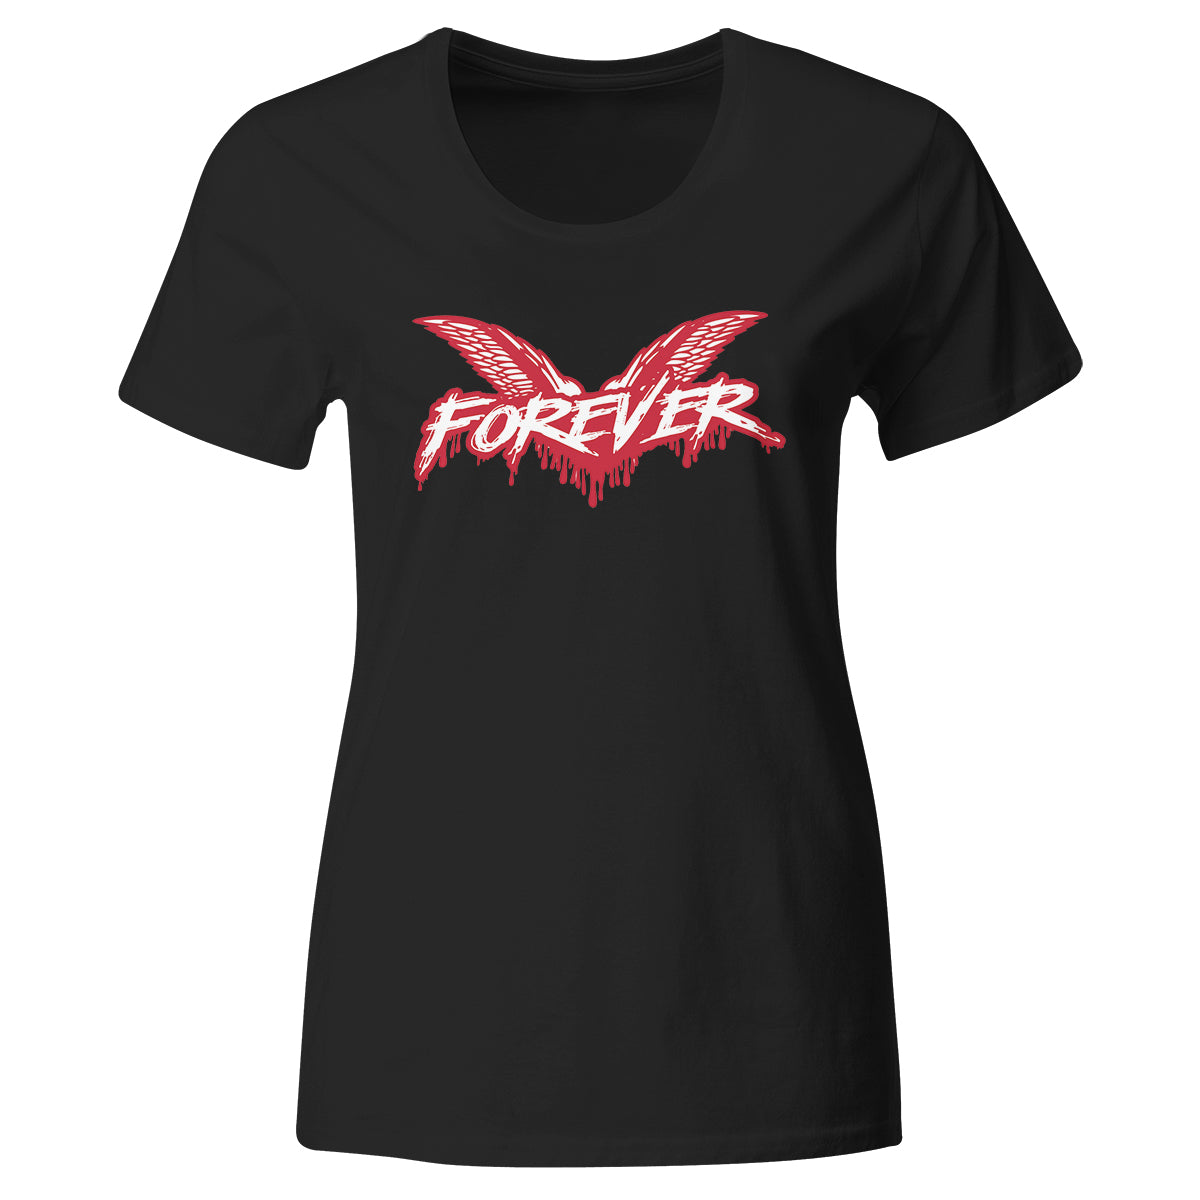 Cock Sparrer - Forever - Red and White on Black - T-Shirt - Fitted